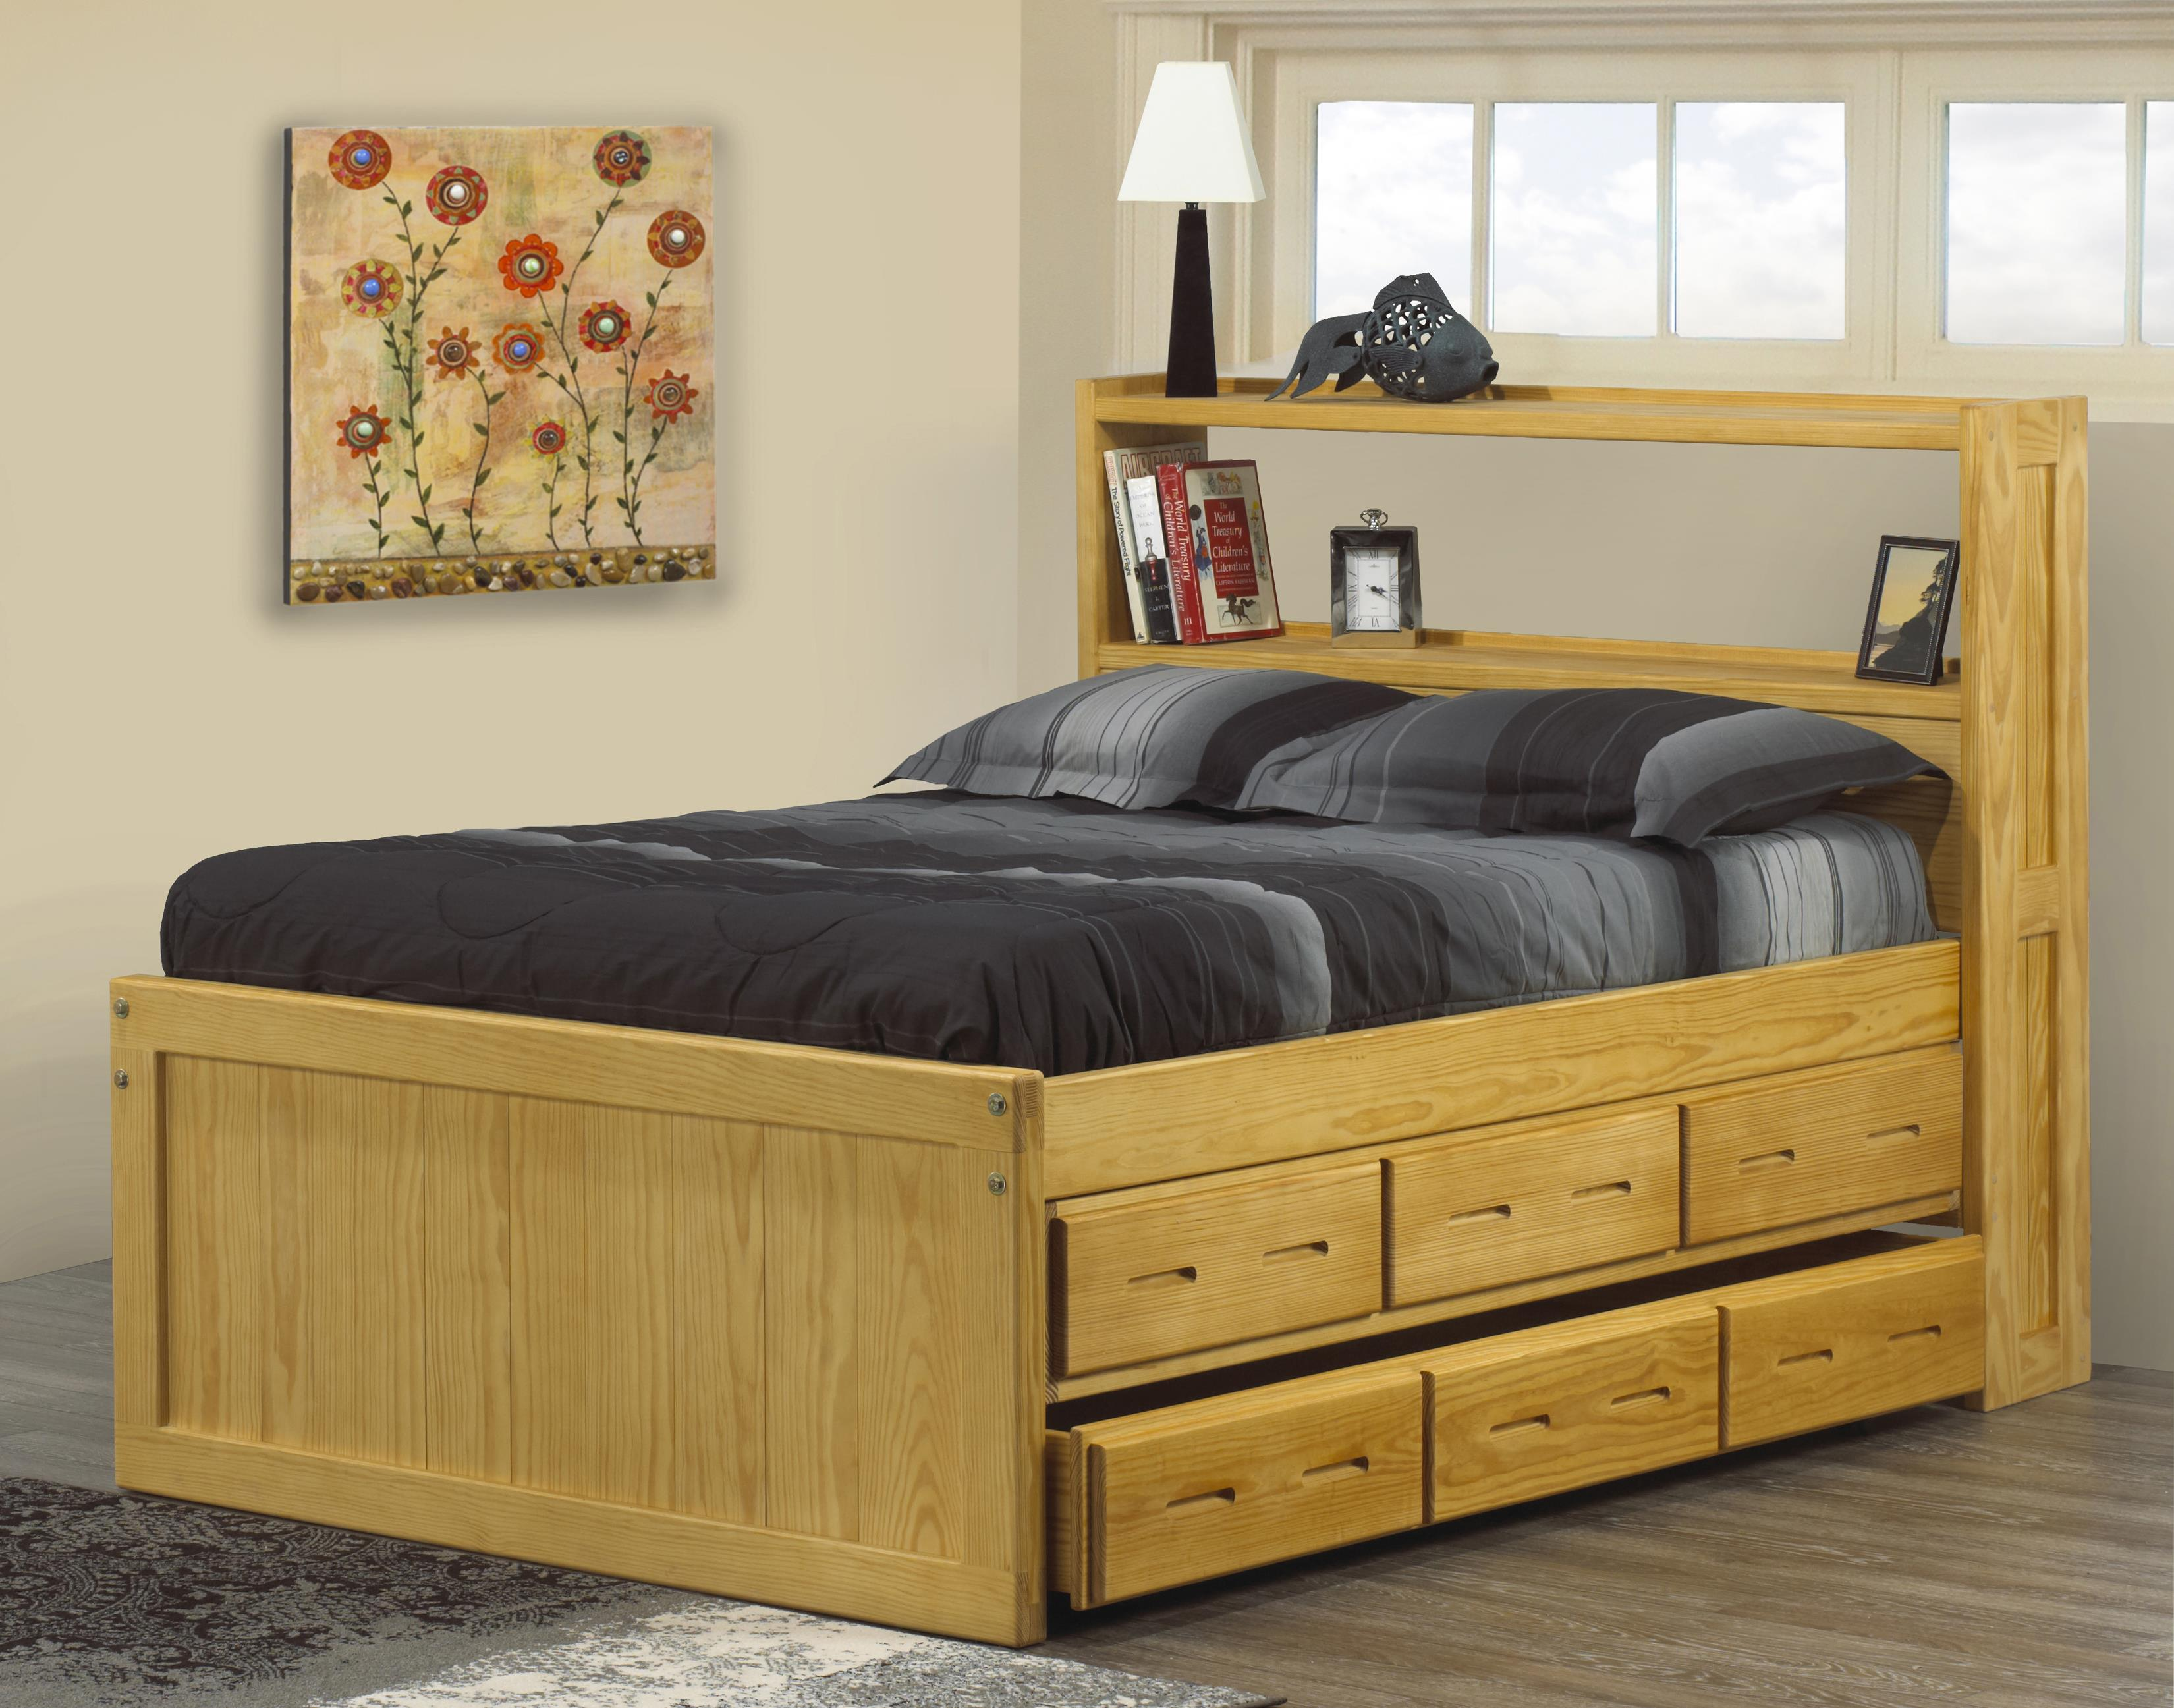 Crate Designs - Bedroom Twin Captain's Bookcase Bed by Crate Designs at Jordan's Home Furnishings